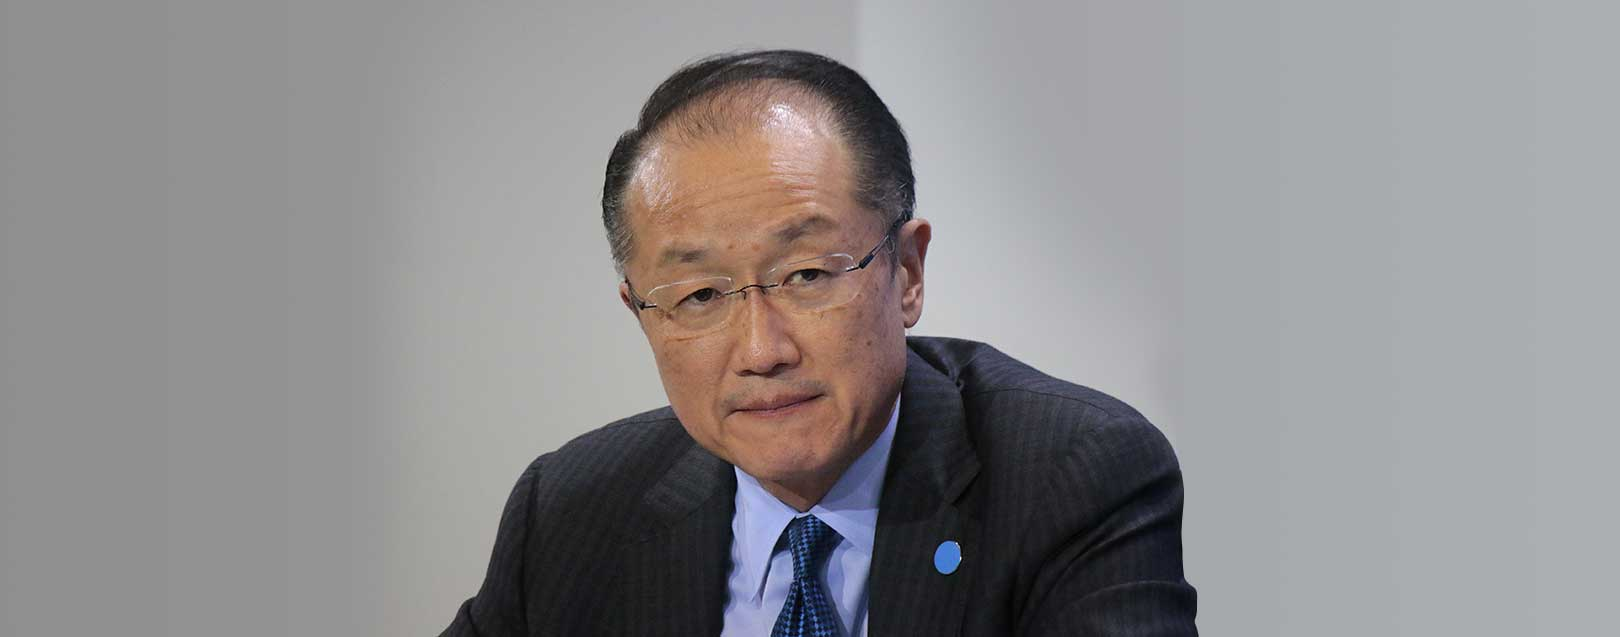 Multiple risks threaten hard fought gains in many countries : WB